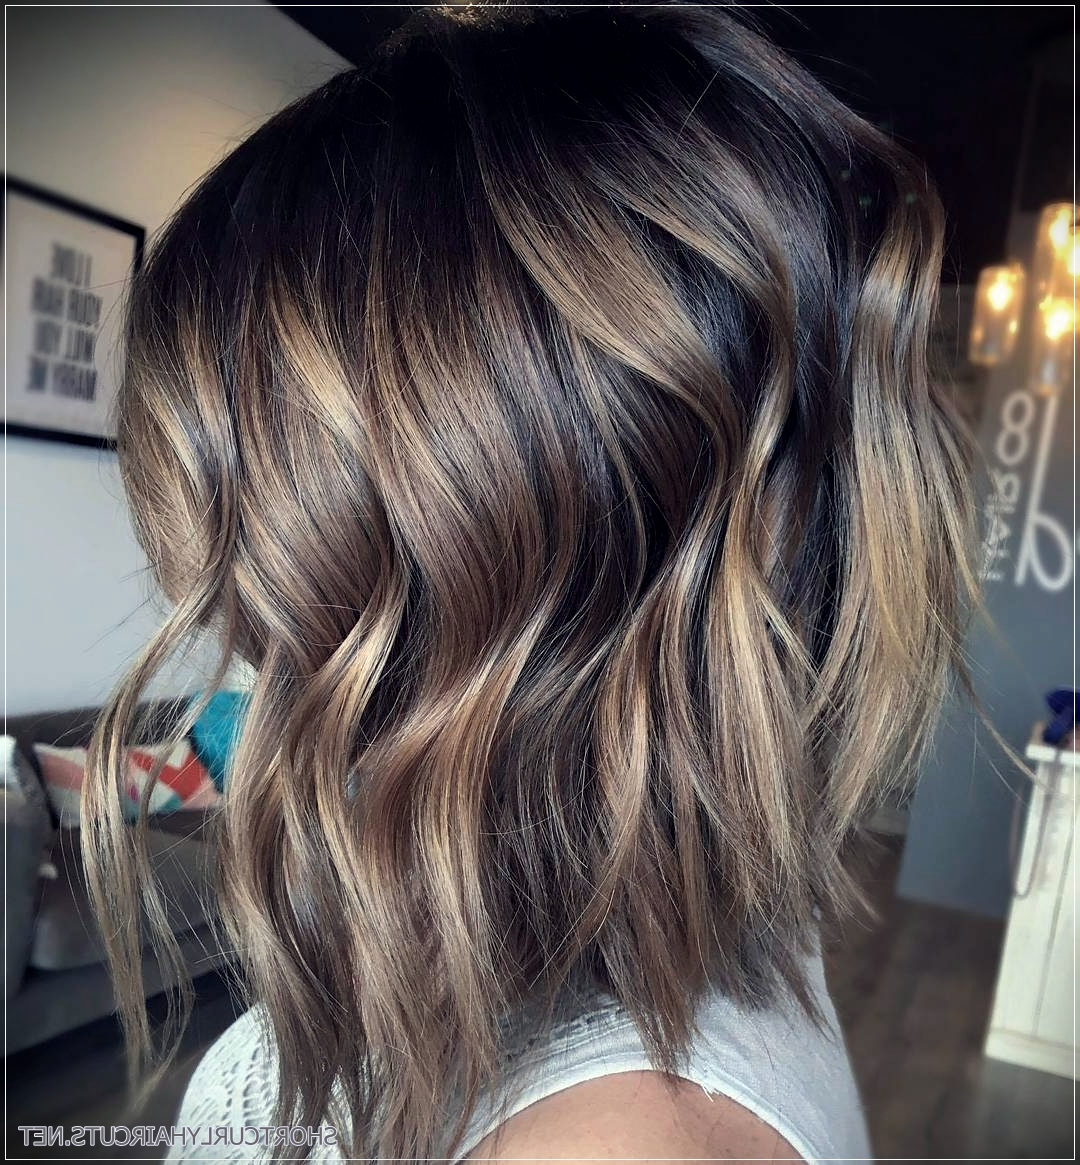 Preferred Choppy Dimensional Layers For Balayage Long Hairstyles Throughout 5 Long Choppy Bob Hairstyles For Brunettes And Blondes – Short And (Gallery 7 of 20)